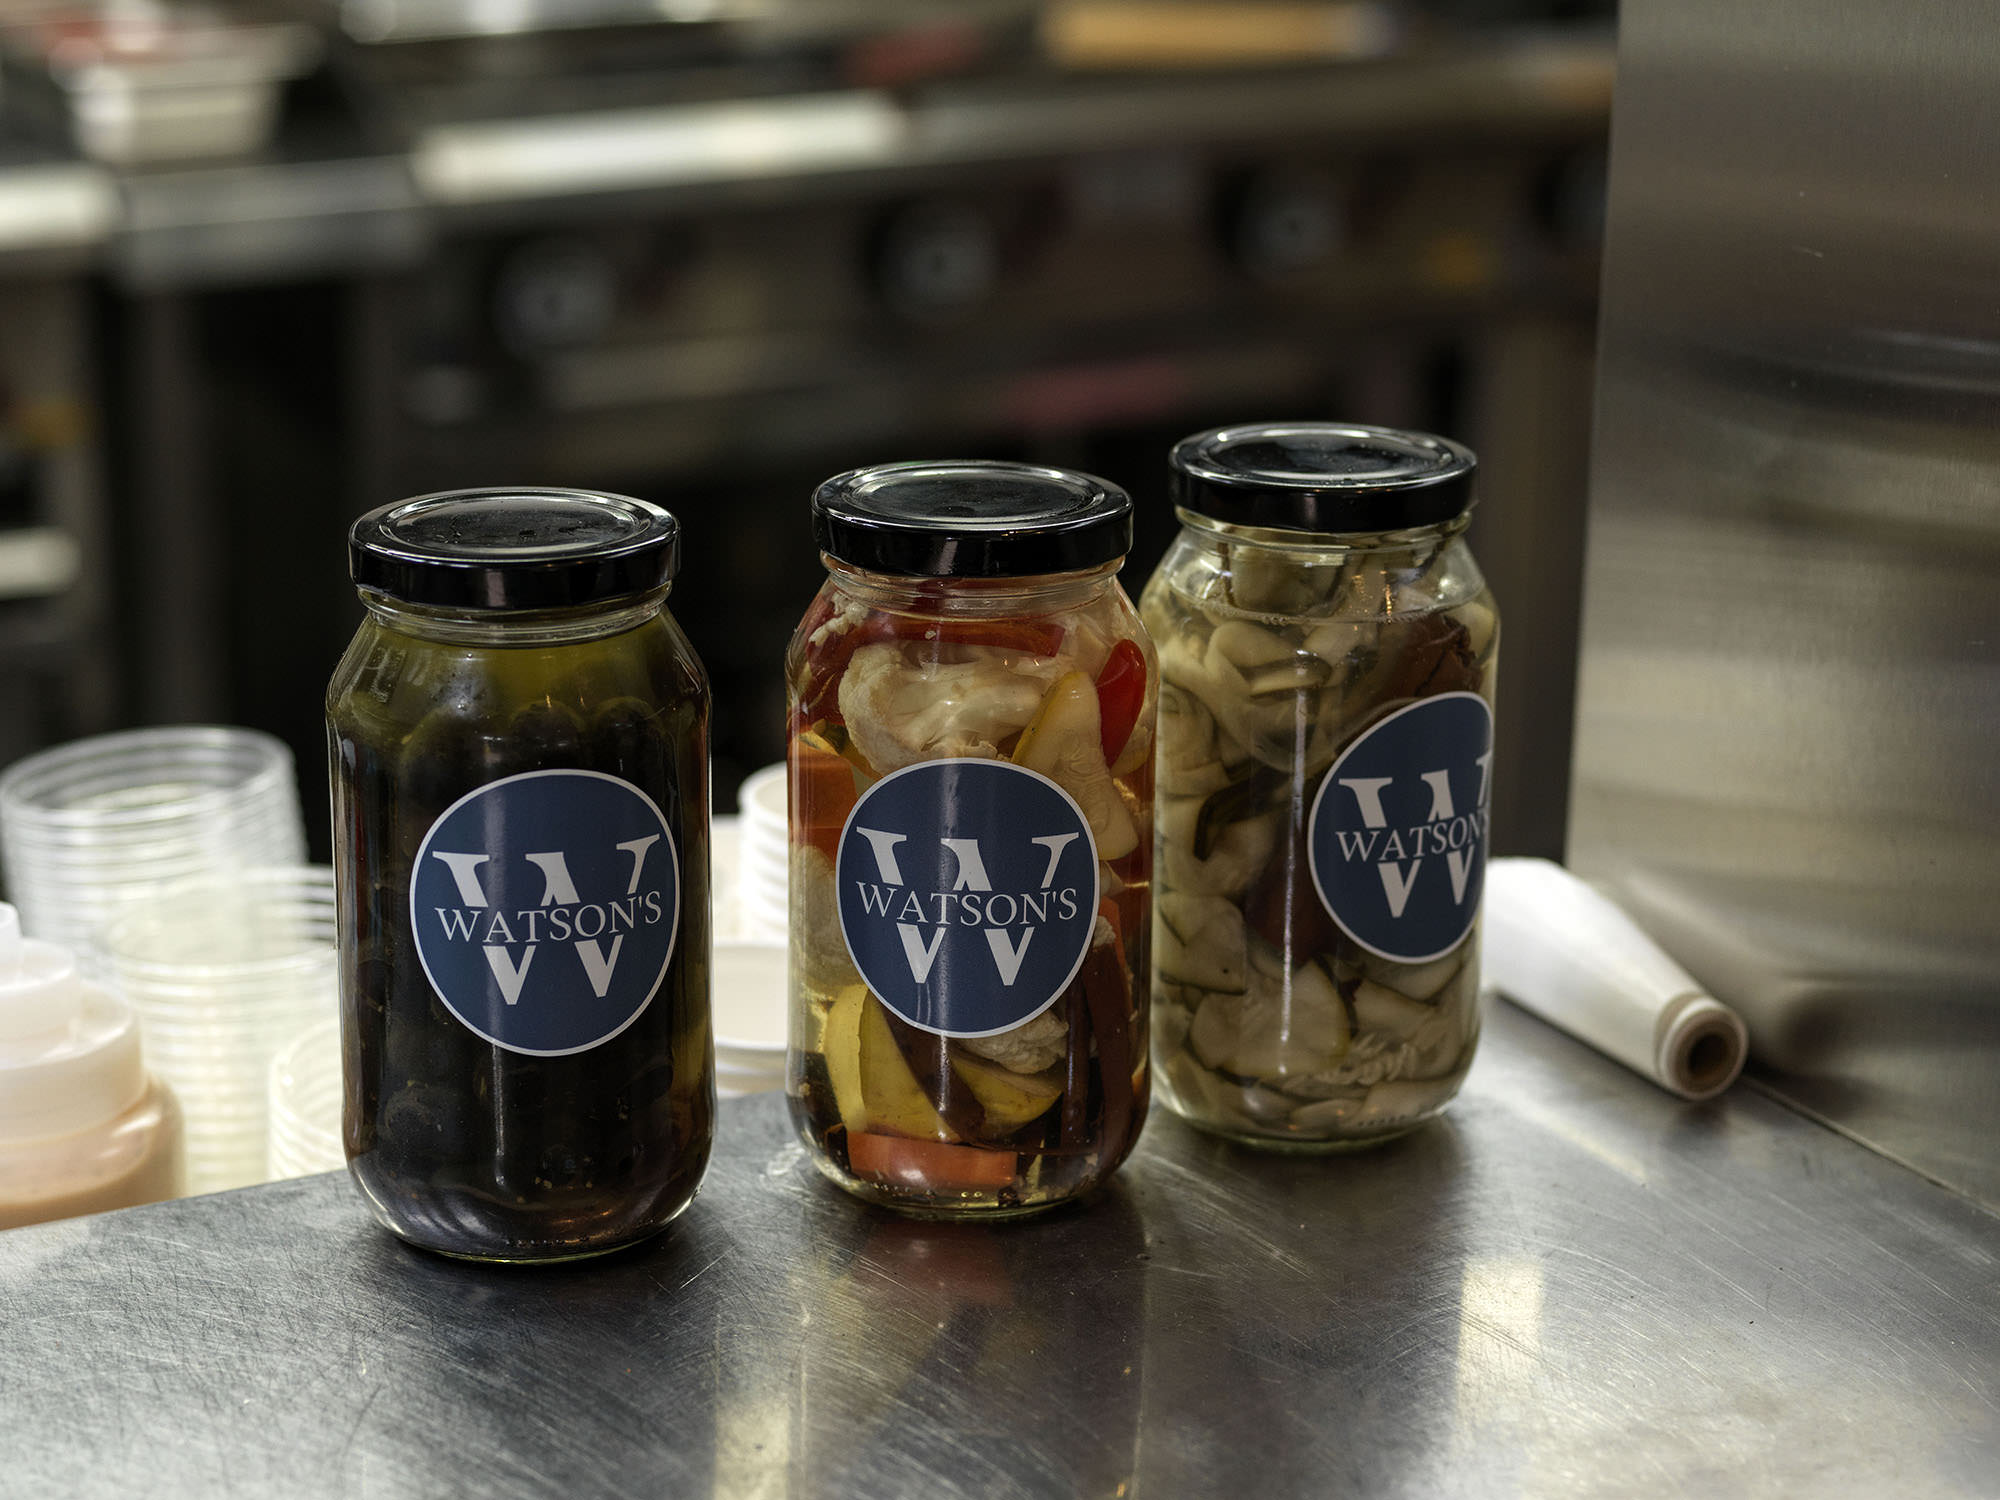 Watson's will focus on making as much as possible in-house.